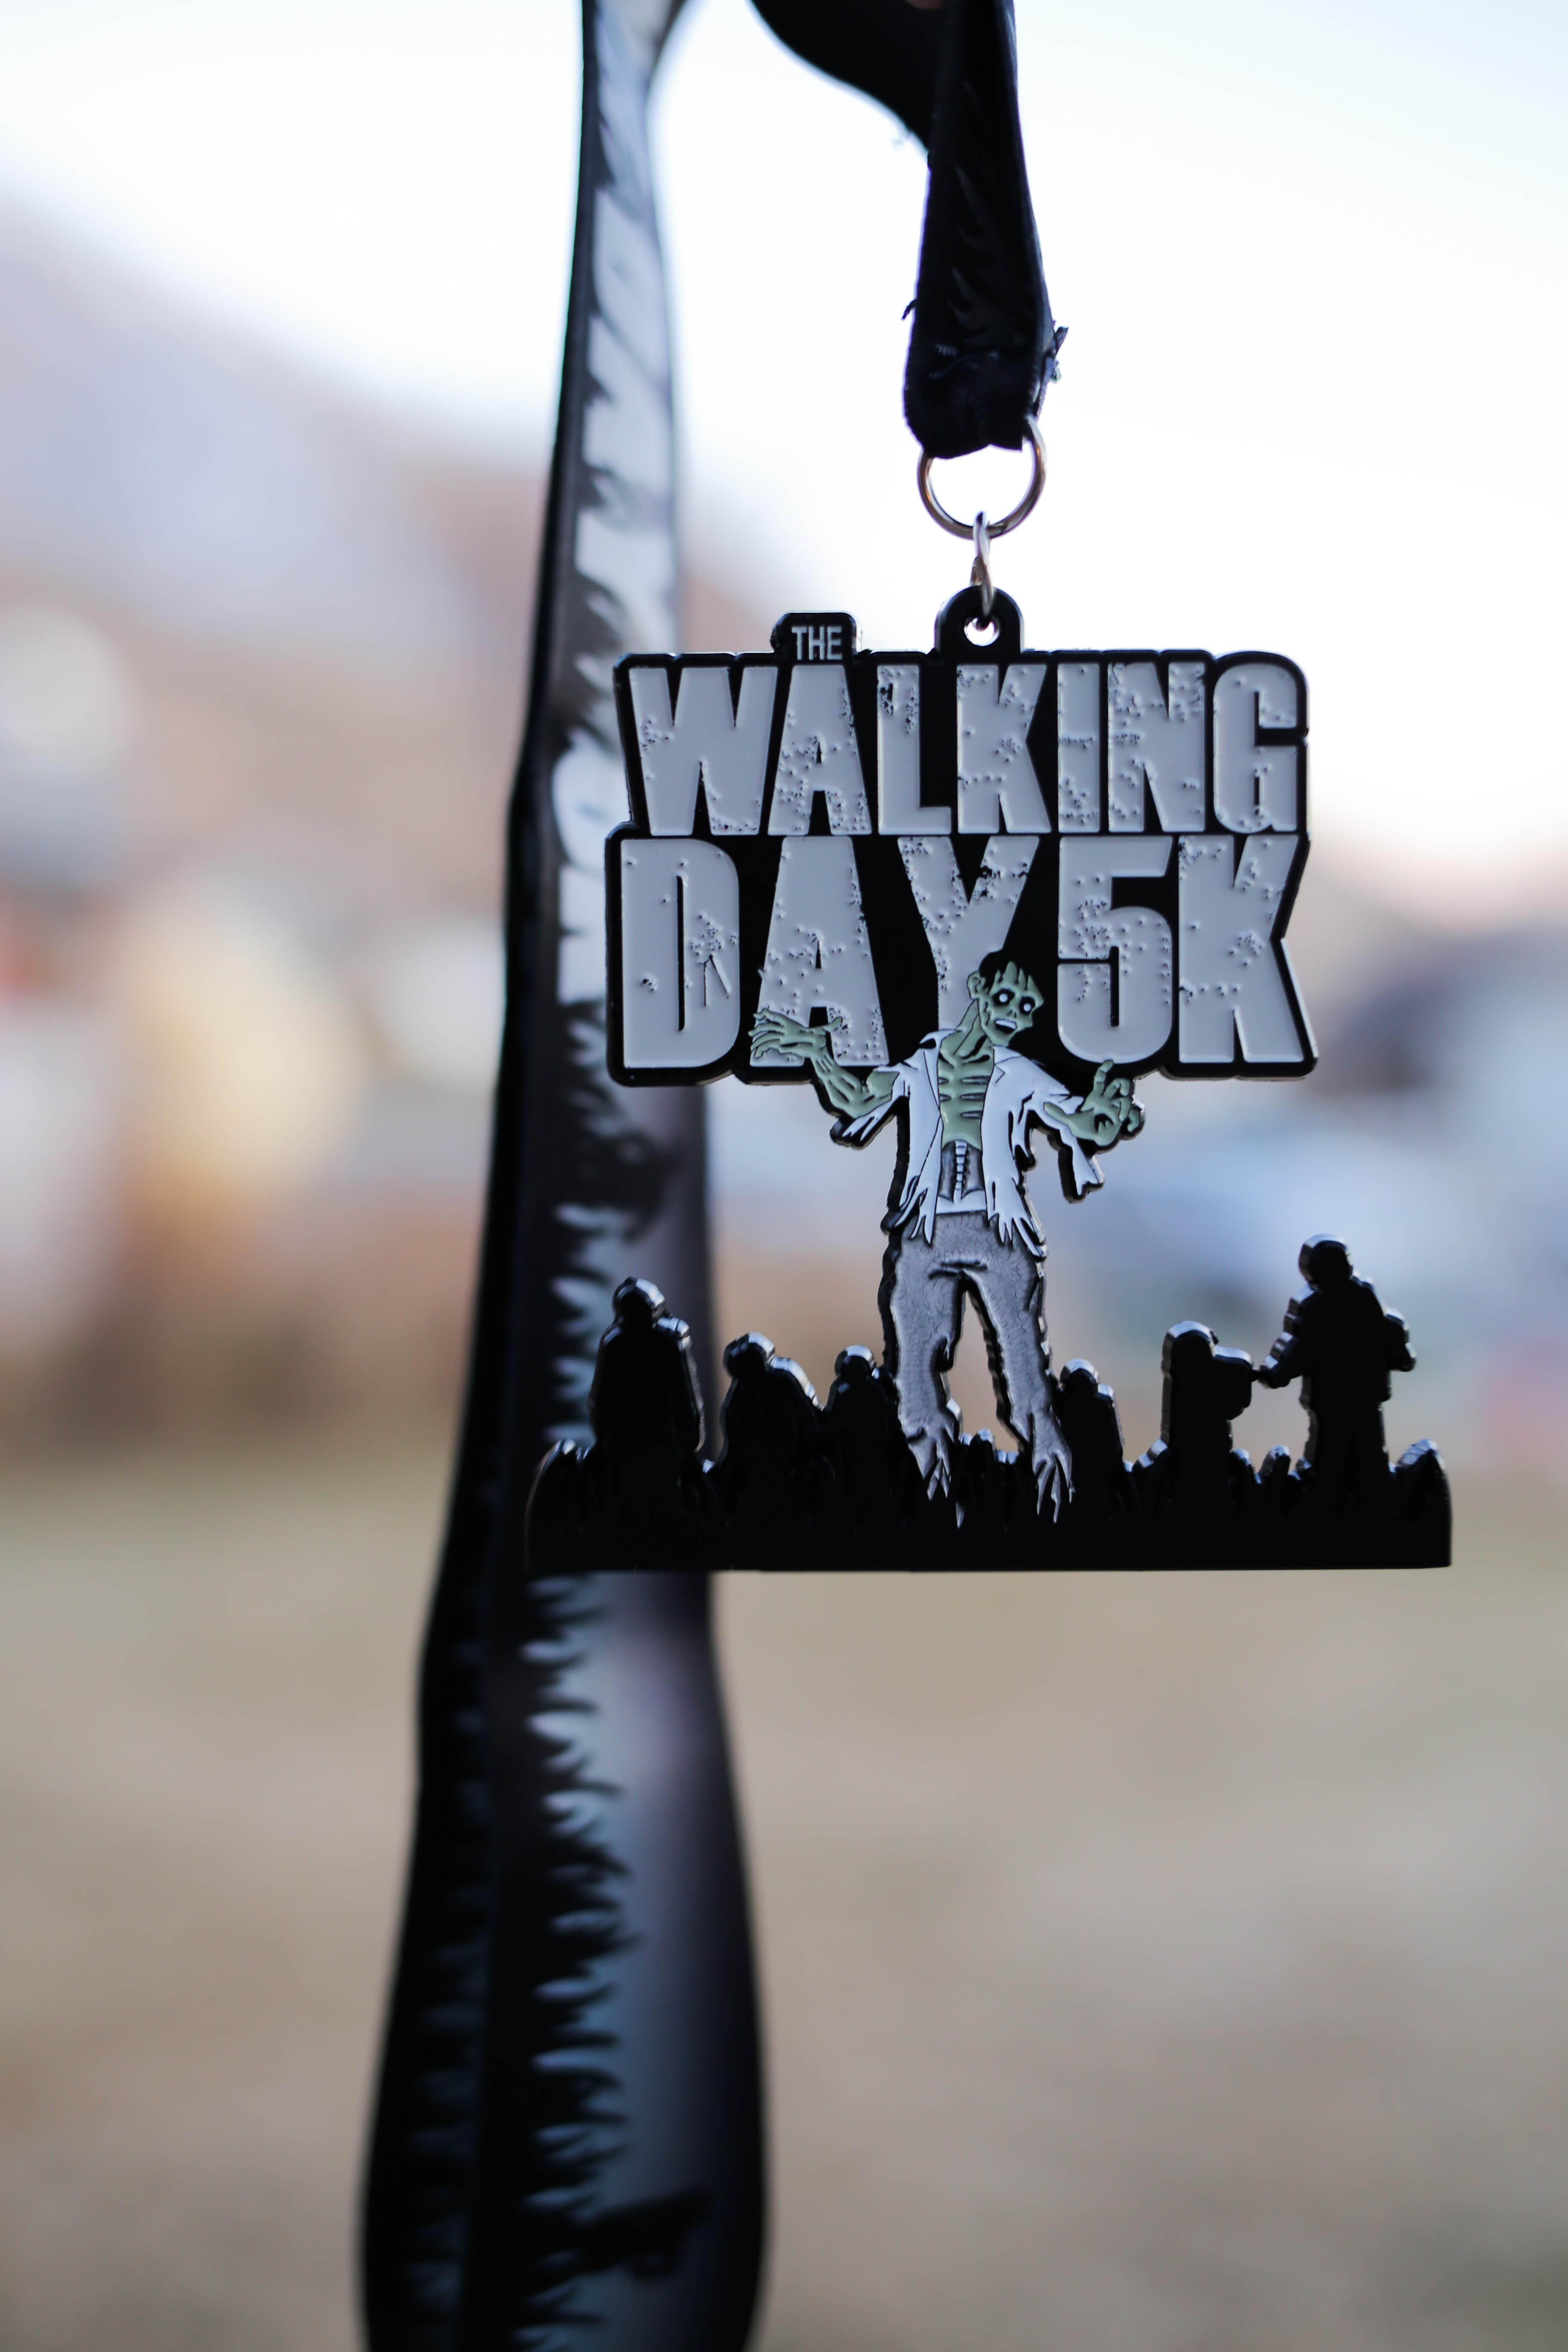 2017 The Walking Day 5K - New York